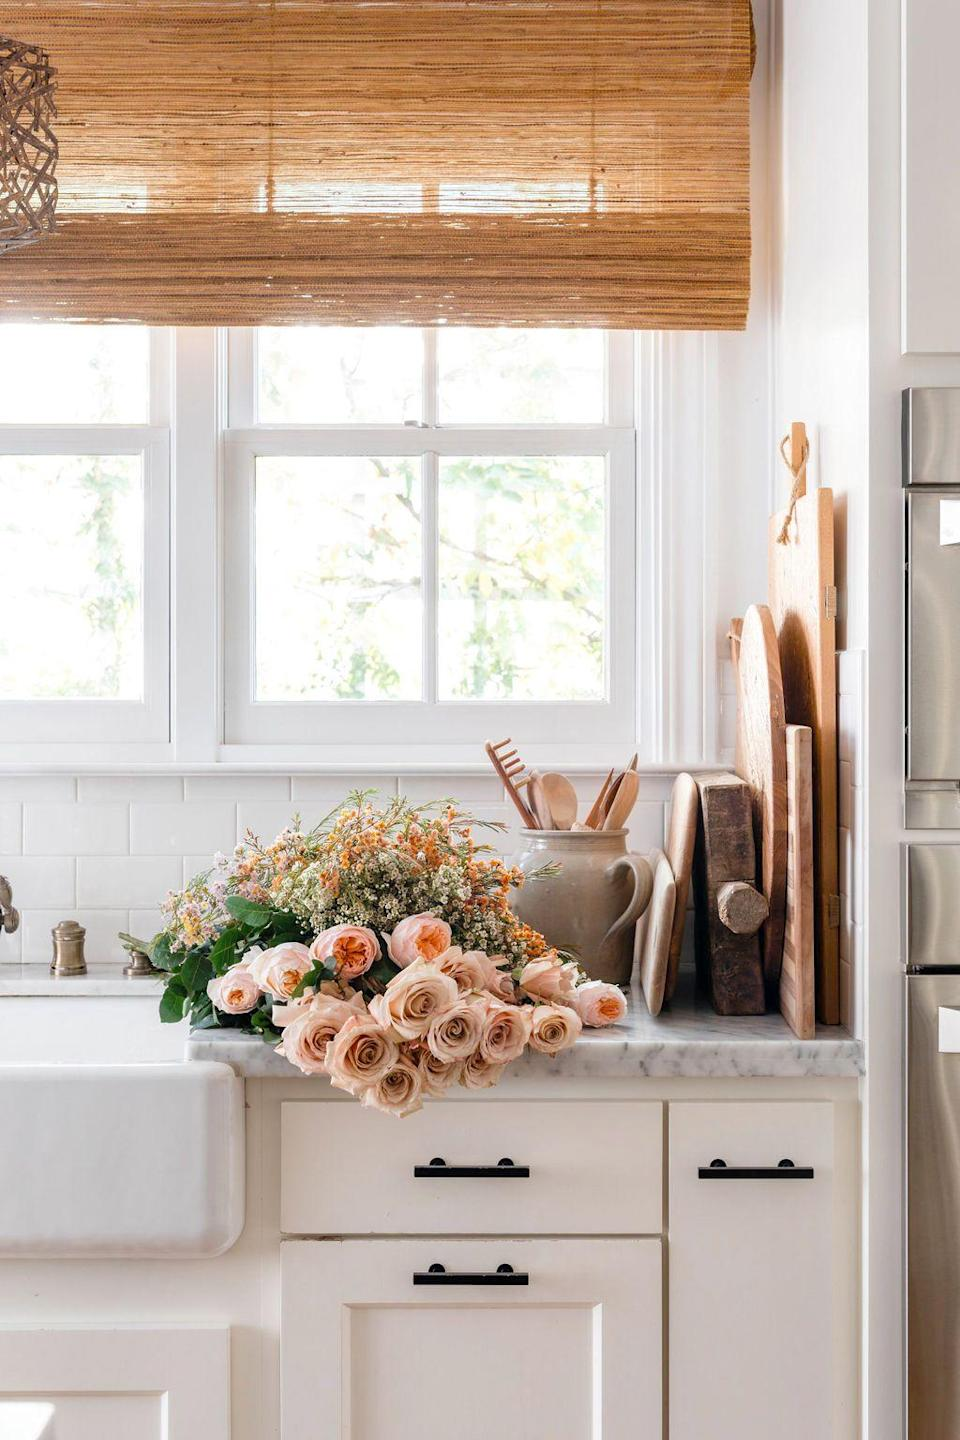 """<p><a href=""""https://www.housebeautiful.com/shopping/home-accessories/tips/g1742/easter-table-decor/"""" rel=""""nofollow noopener"""" target=""""_blank"""" data-ylk=""""slk:Easter"""" class=""""link rapid-noclick-resp"""">Easter</a> usually falls when the weather is finally starting to warm up, making it the first holiday of the year when so many beautiful <a href=""""https://www.housebeautiful.com/entertaining/table-decor/tips/g1679/spring-table-settings-ideas/"""" rel=""""nofollow noopener"""" target=""""_blank"""" data-ylk=""""slk:flowers"""" class=""""link rapid-noclick-resp"""">flowers</a> are finally in season and everything seems to be in bloom. If you're hosting a brunch or you simply want to liven up your home for the holiday, an Easter flower arrangement will set the mood. Get inspired and embrace this spring celebration in style with the twenty chic and <a href=""""https://www.housebeautiful.com/entertaining/holidays-celebrations/a26728661/easter-colors-meaning/"""" rel=""""nofollow noopener"""" target=""""_blank"""" data-ylk=""""slk:on-theme"""" class=""""link rapid-noclick-resp"""">on-theme</a> florals ahead (plus, shop our favorite vases to display them in for even an even more <a href=""""https://www.housebeautiful.com/entertaining/flower-arrangements/a27583792/trader-joes-flower-arrangement-tutorial-video/"""" rel=""""nofollow noopener"""" target=""""_blank"""" data-ylk=""""slk:elevated"""" class=""""link rapid-noclick-resp"""">elevated</a> Easter Sunday). </p>"""